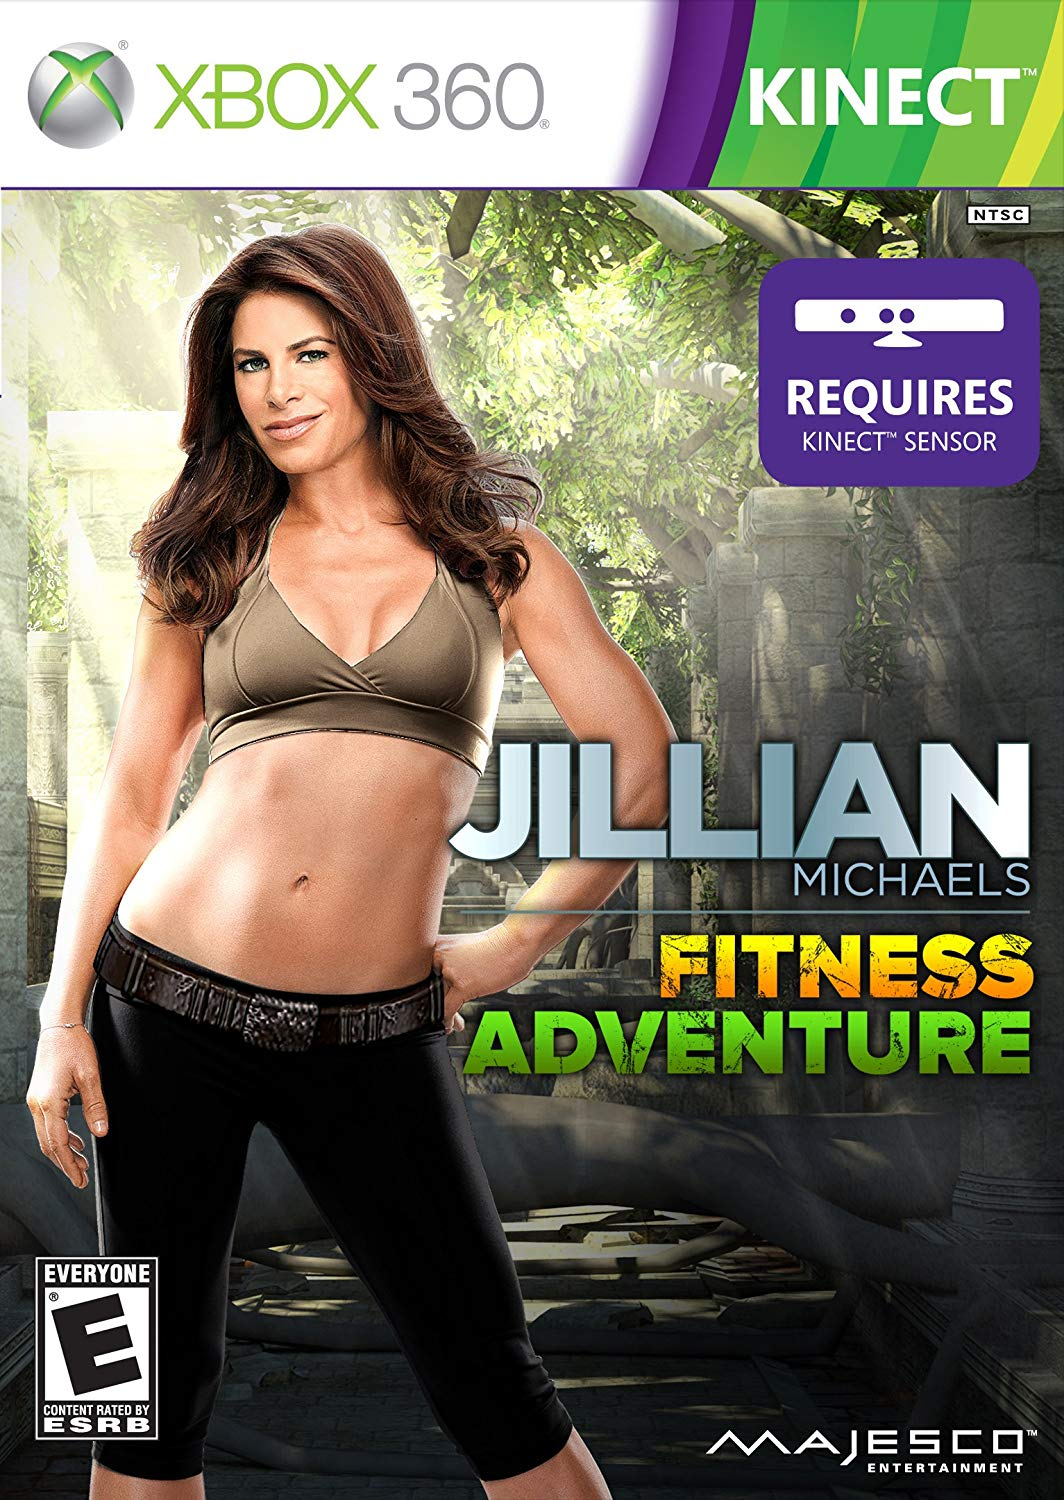 Jillian Michels Fitness Adventure